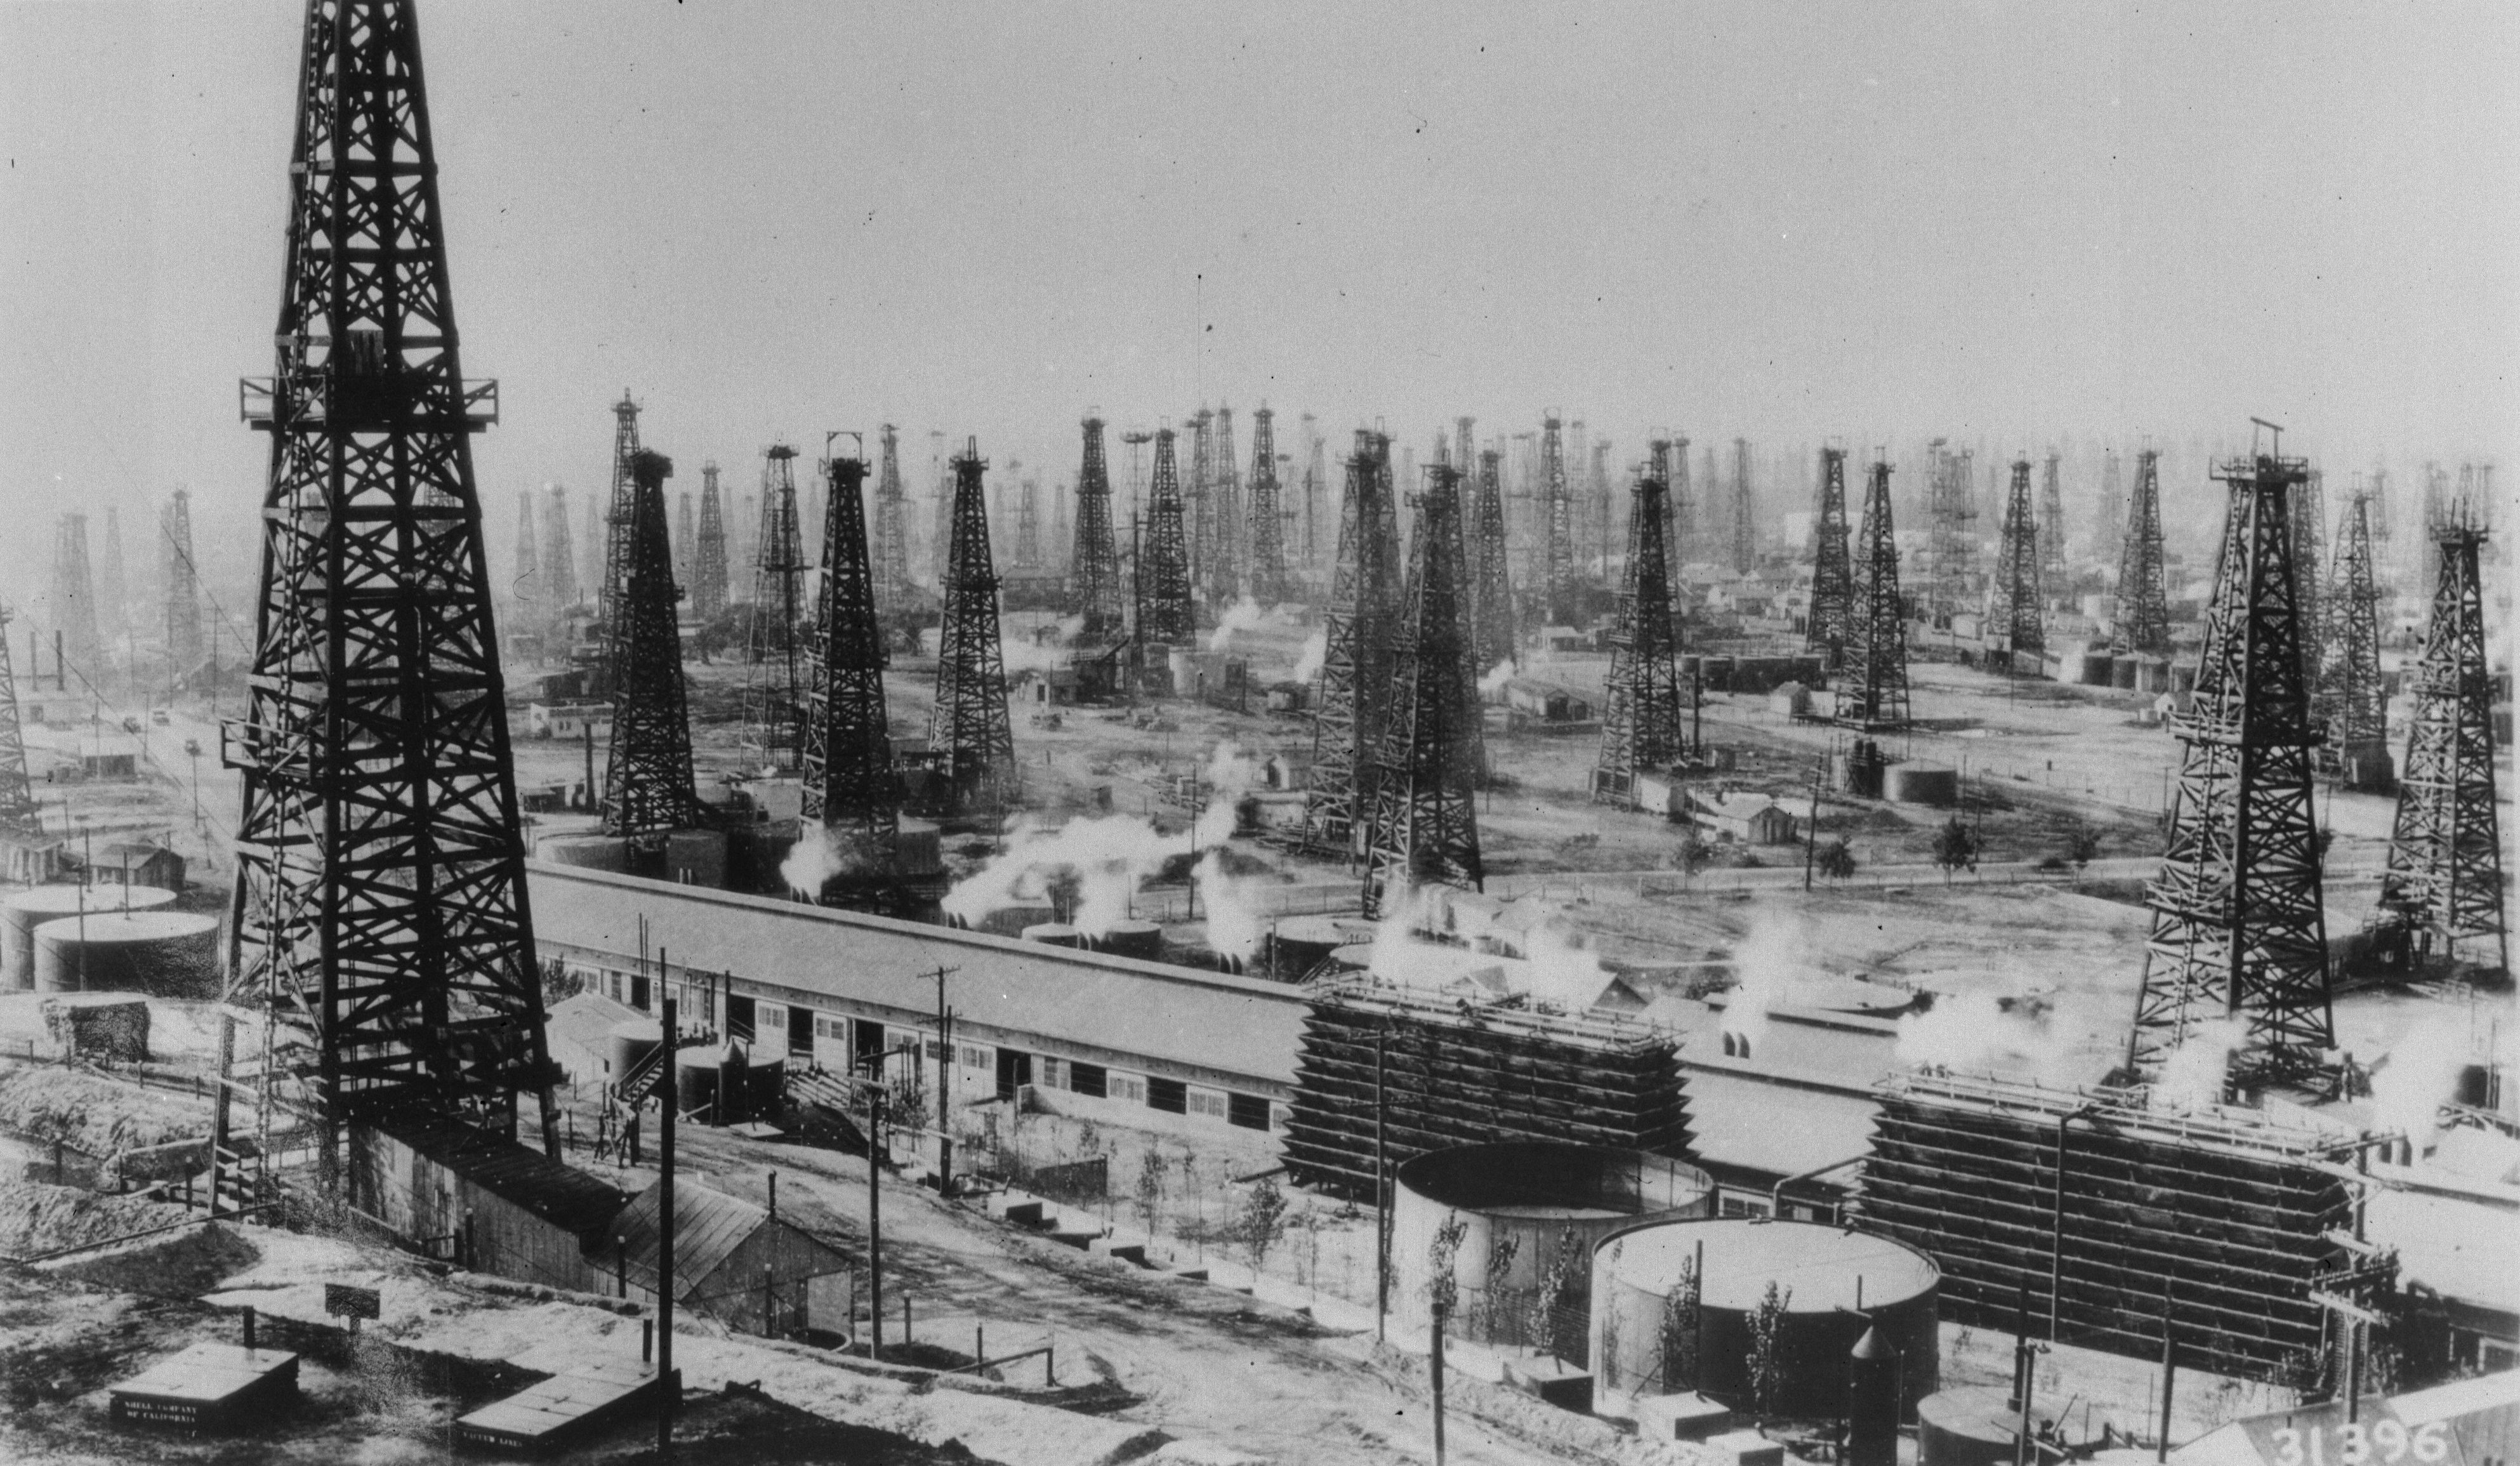 May 1938: An oilfield of rotary derricks in the USA.